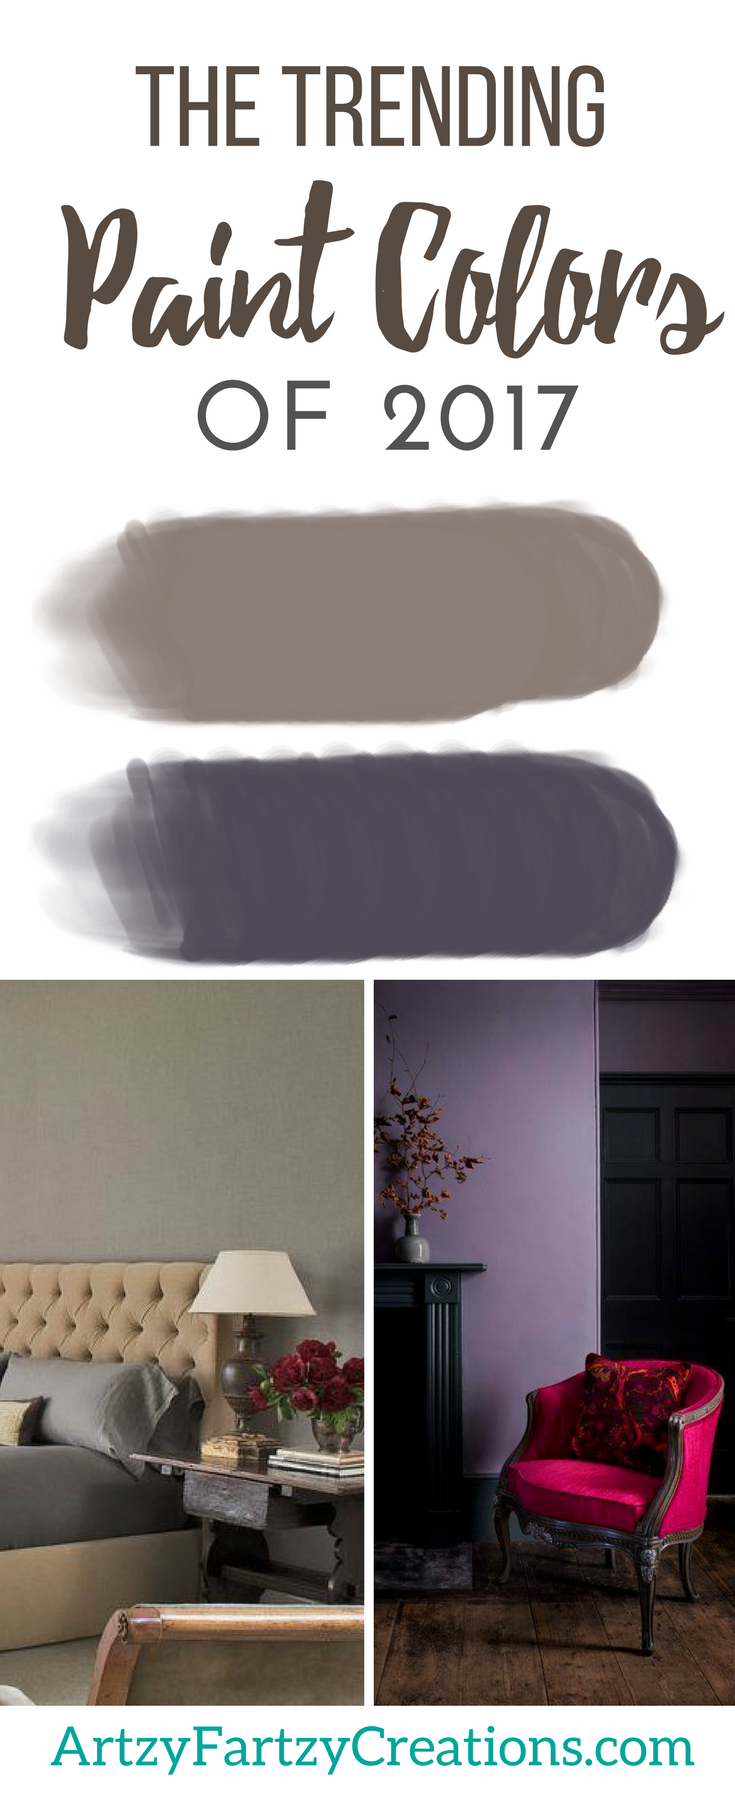 Paint Color of the Year | Paint Colors of 2017 | Shadow vs Poised Taupe | Cheryl Phan of ArtzyFartzyCreations.com